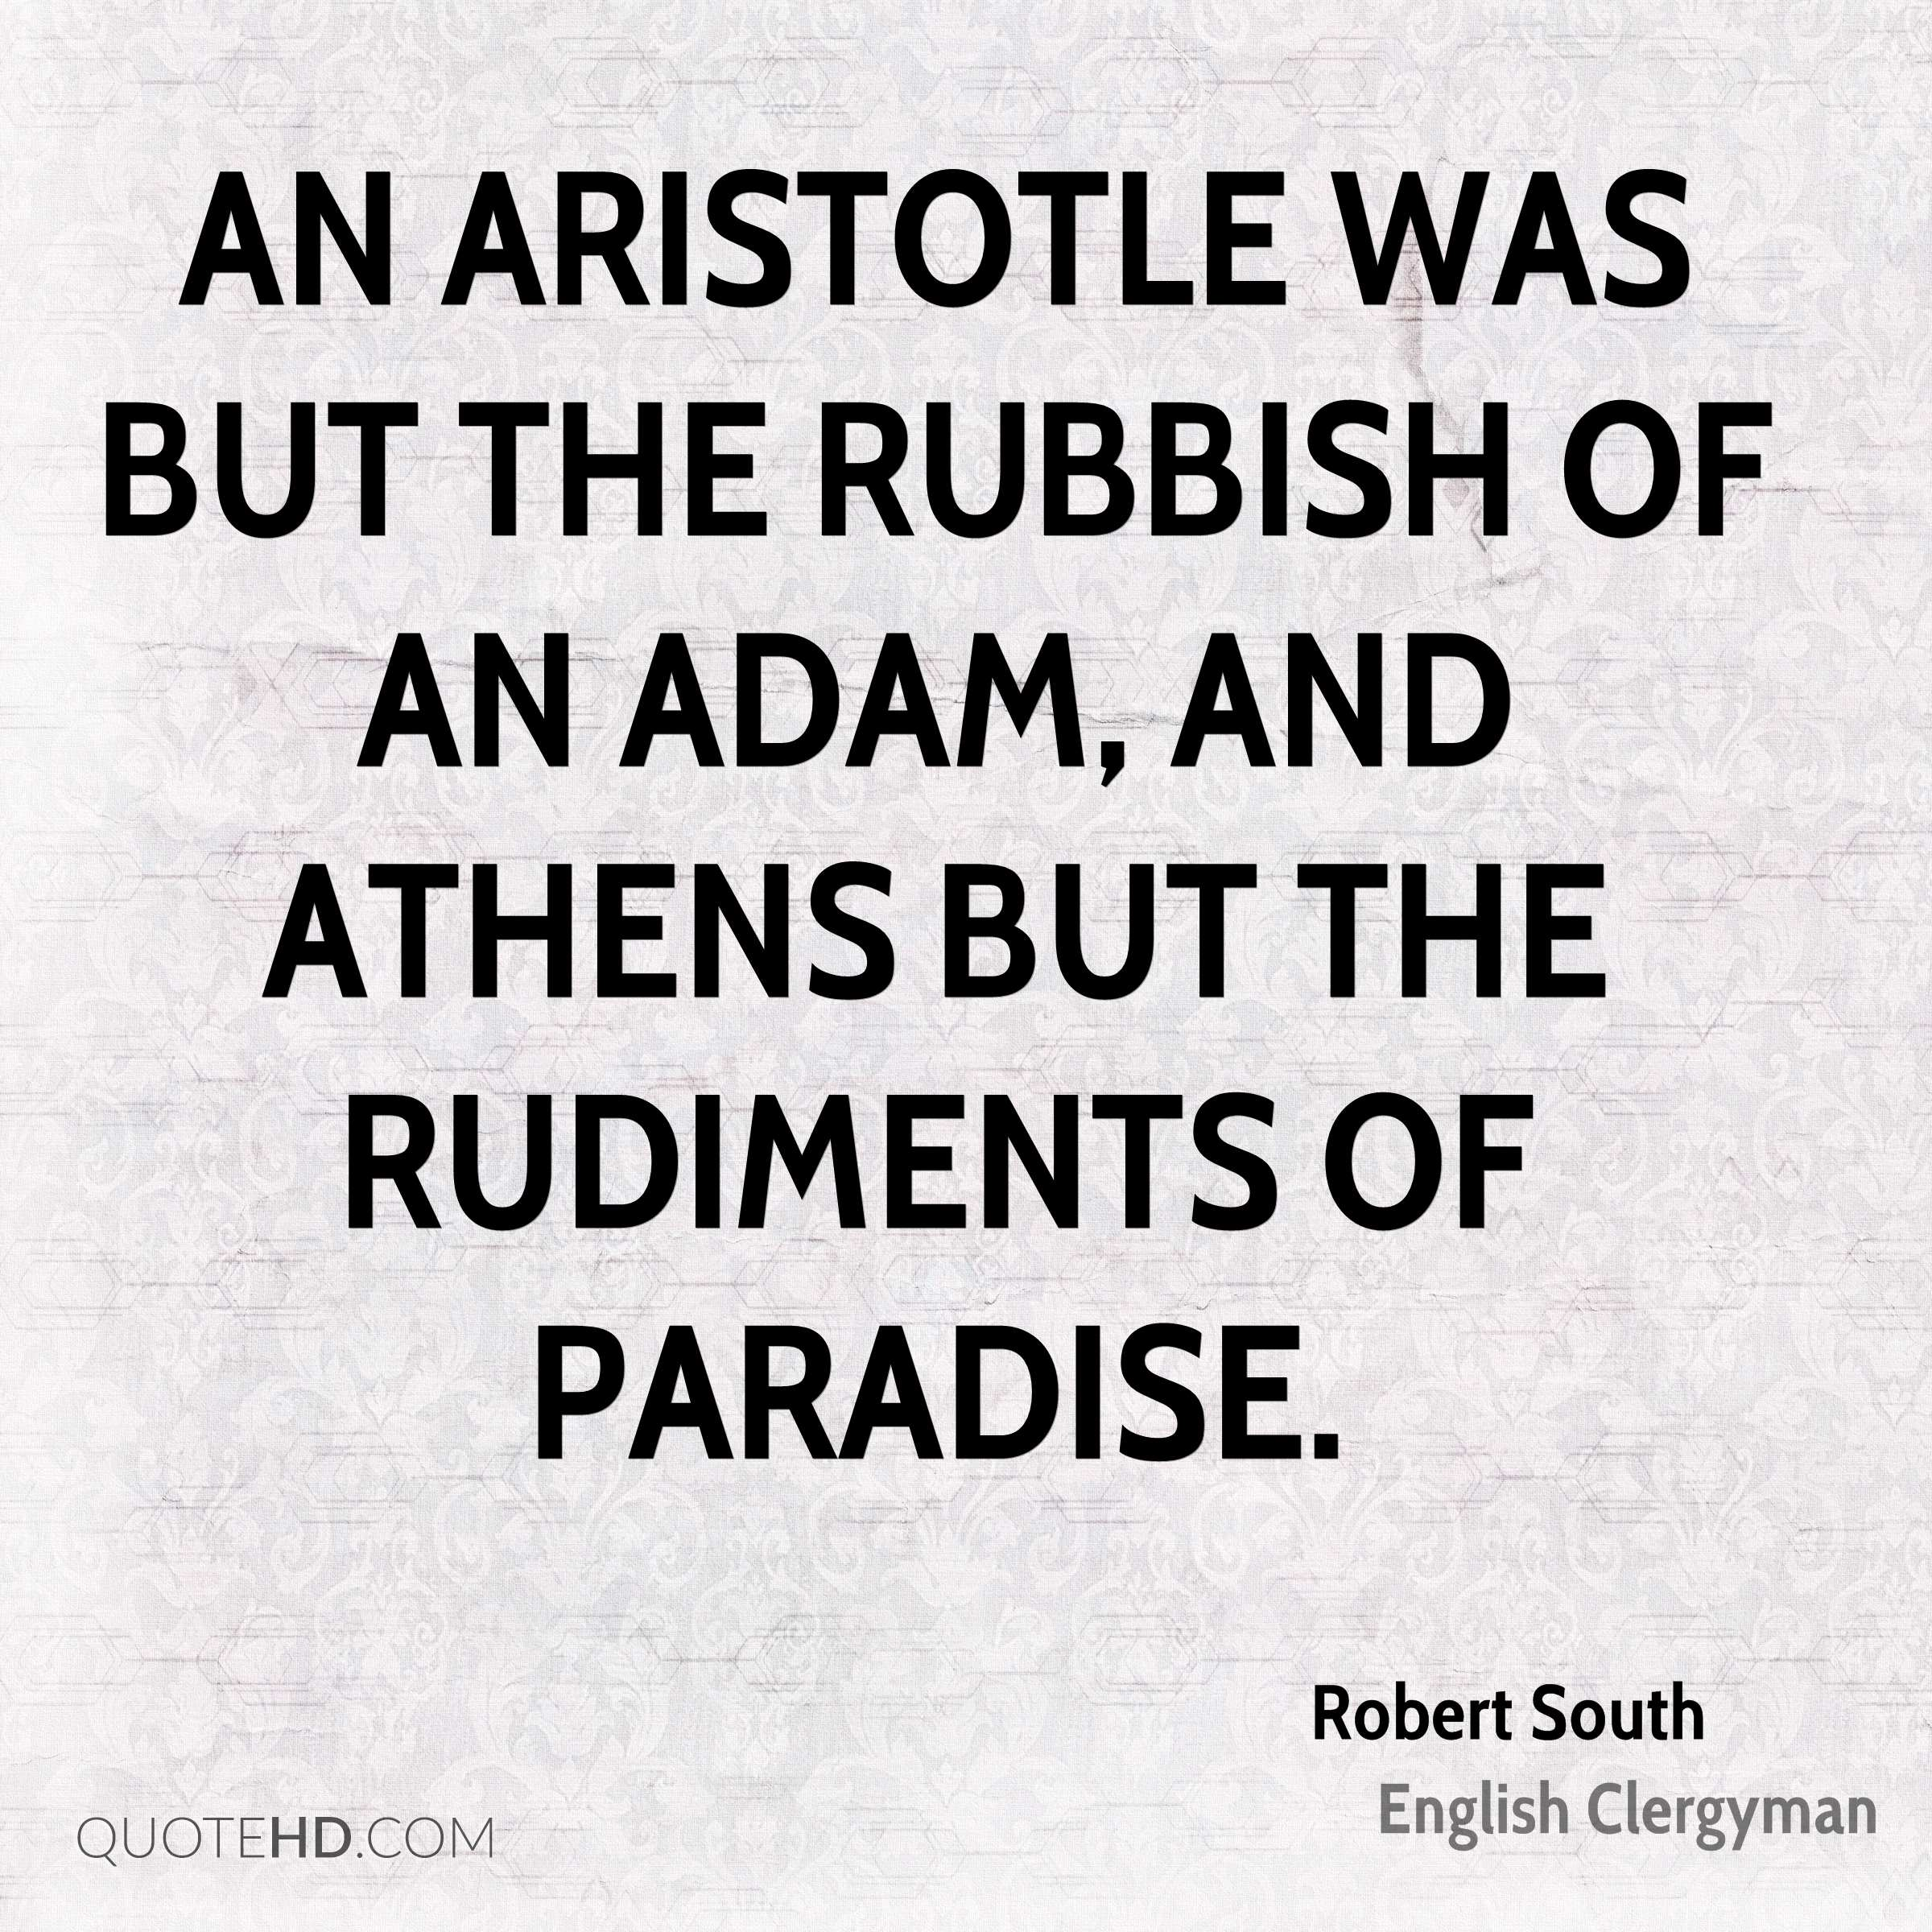 An Aristotle was but the rubbish of an Adam, and Athens but the rudiments of Paradise.